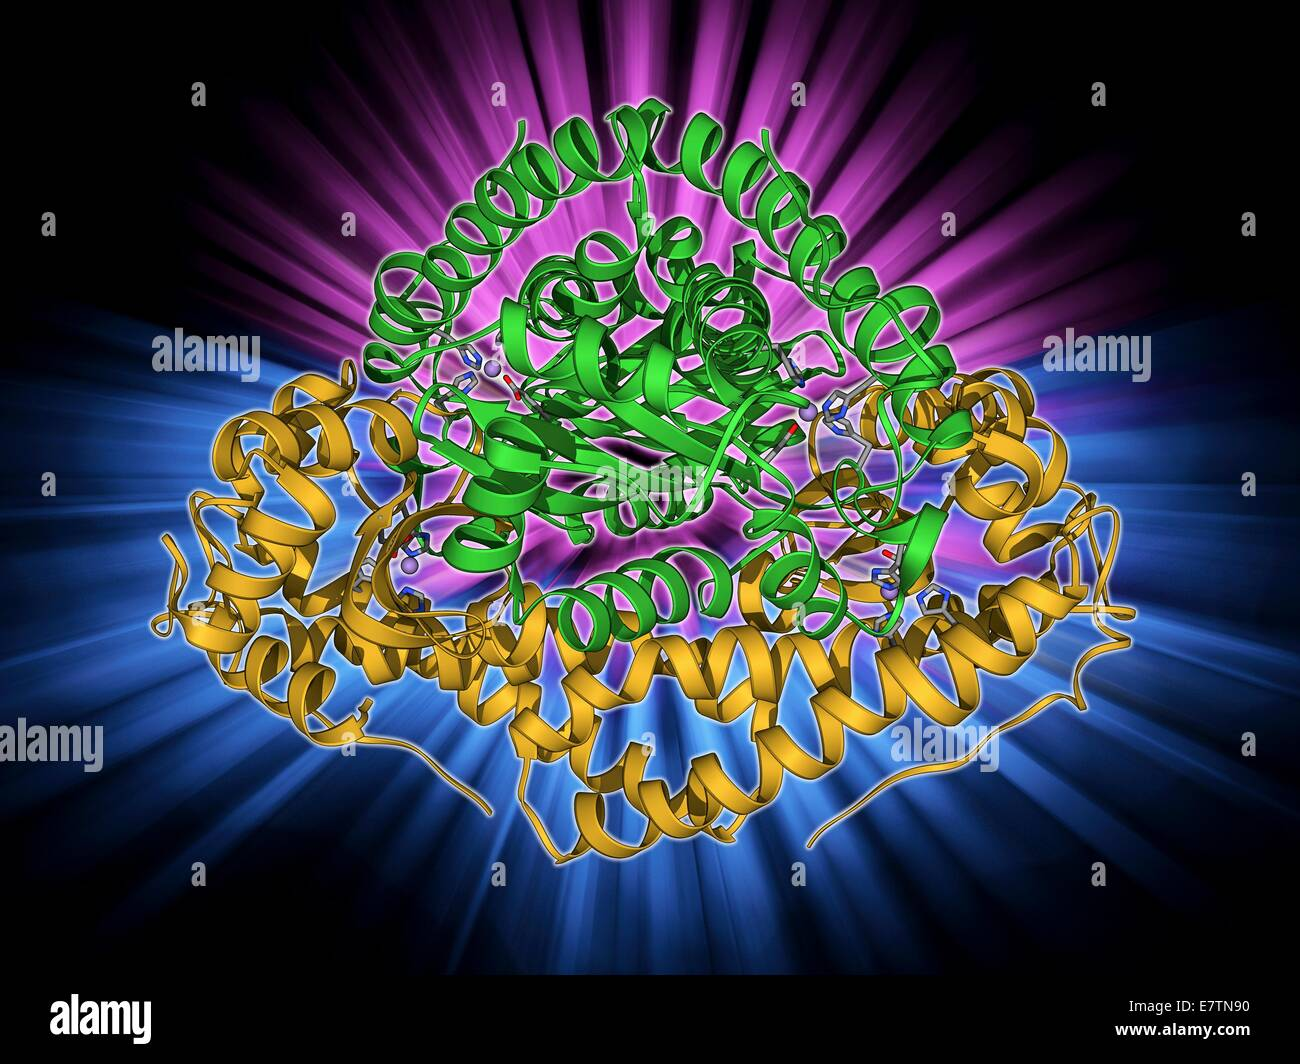 Manganese superoxide dismutase enzyme, molecular model. This enzyme scavenges and decomposes the potentially toxic - Stock Image